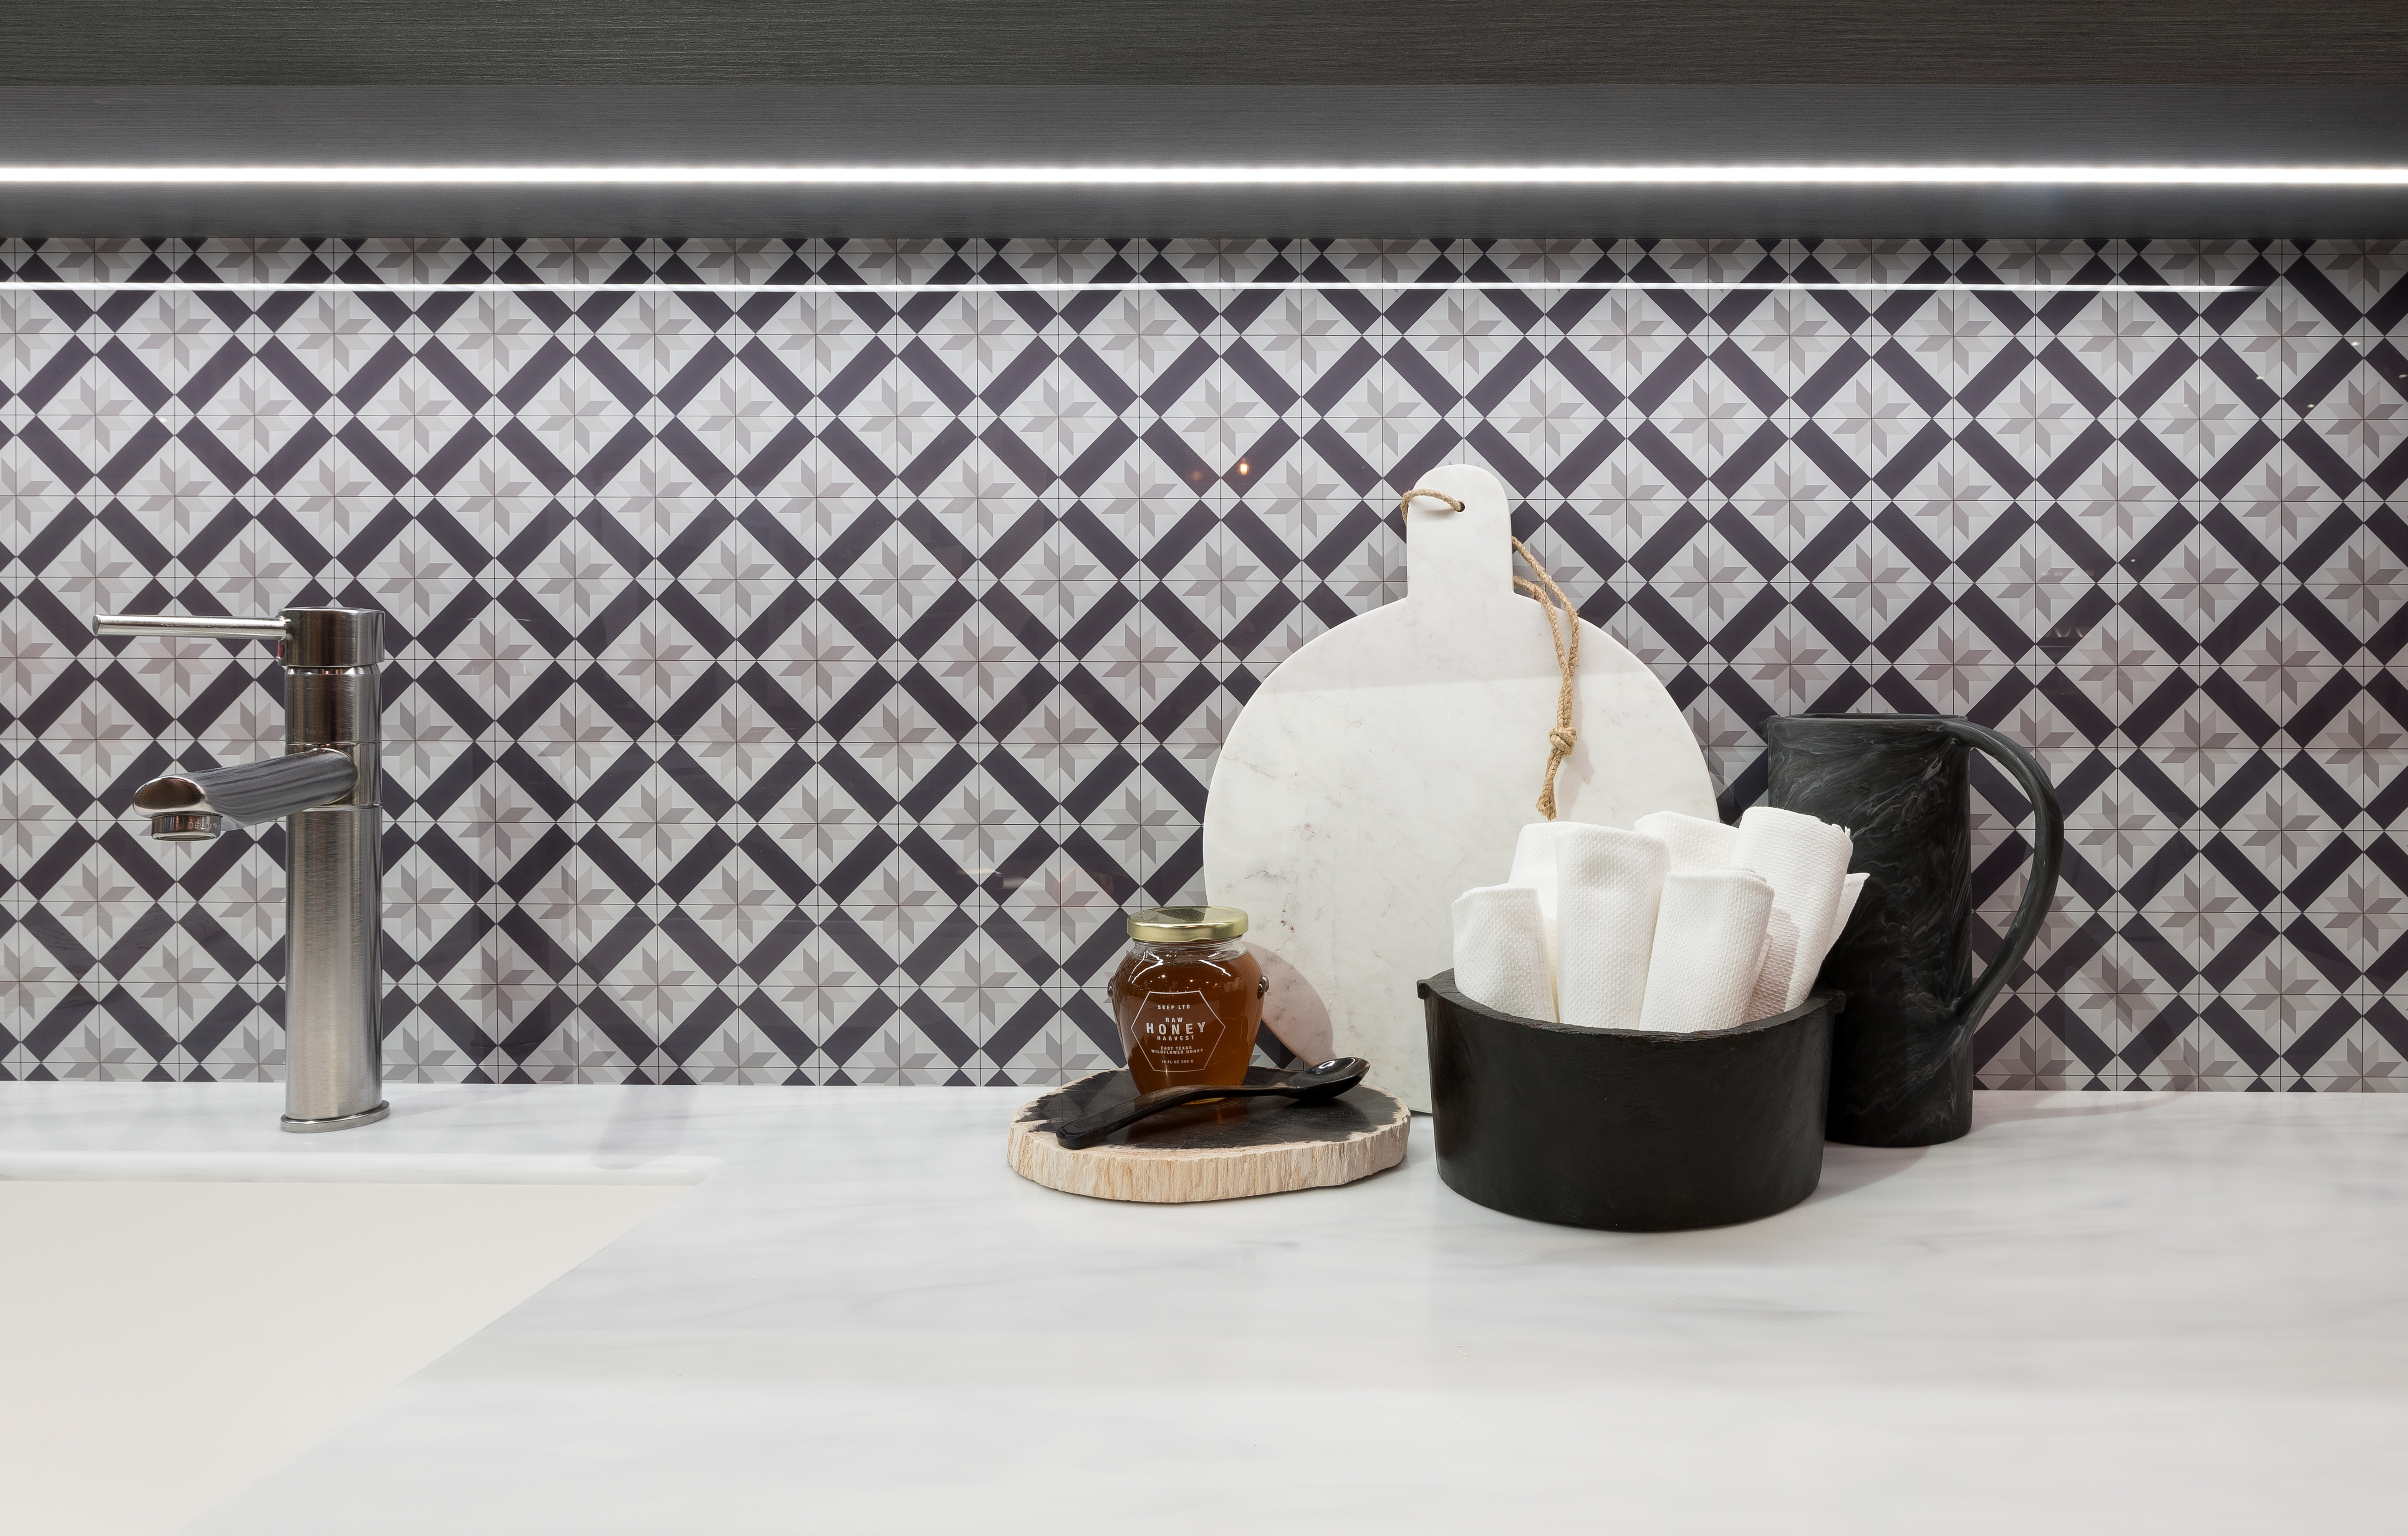 Wilsonart Debuts Acrylic Backsplash Collection Residential Products Online